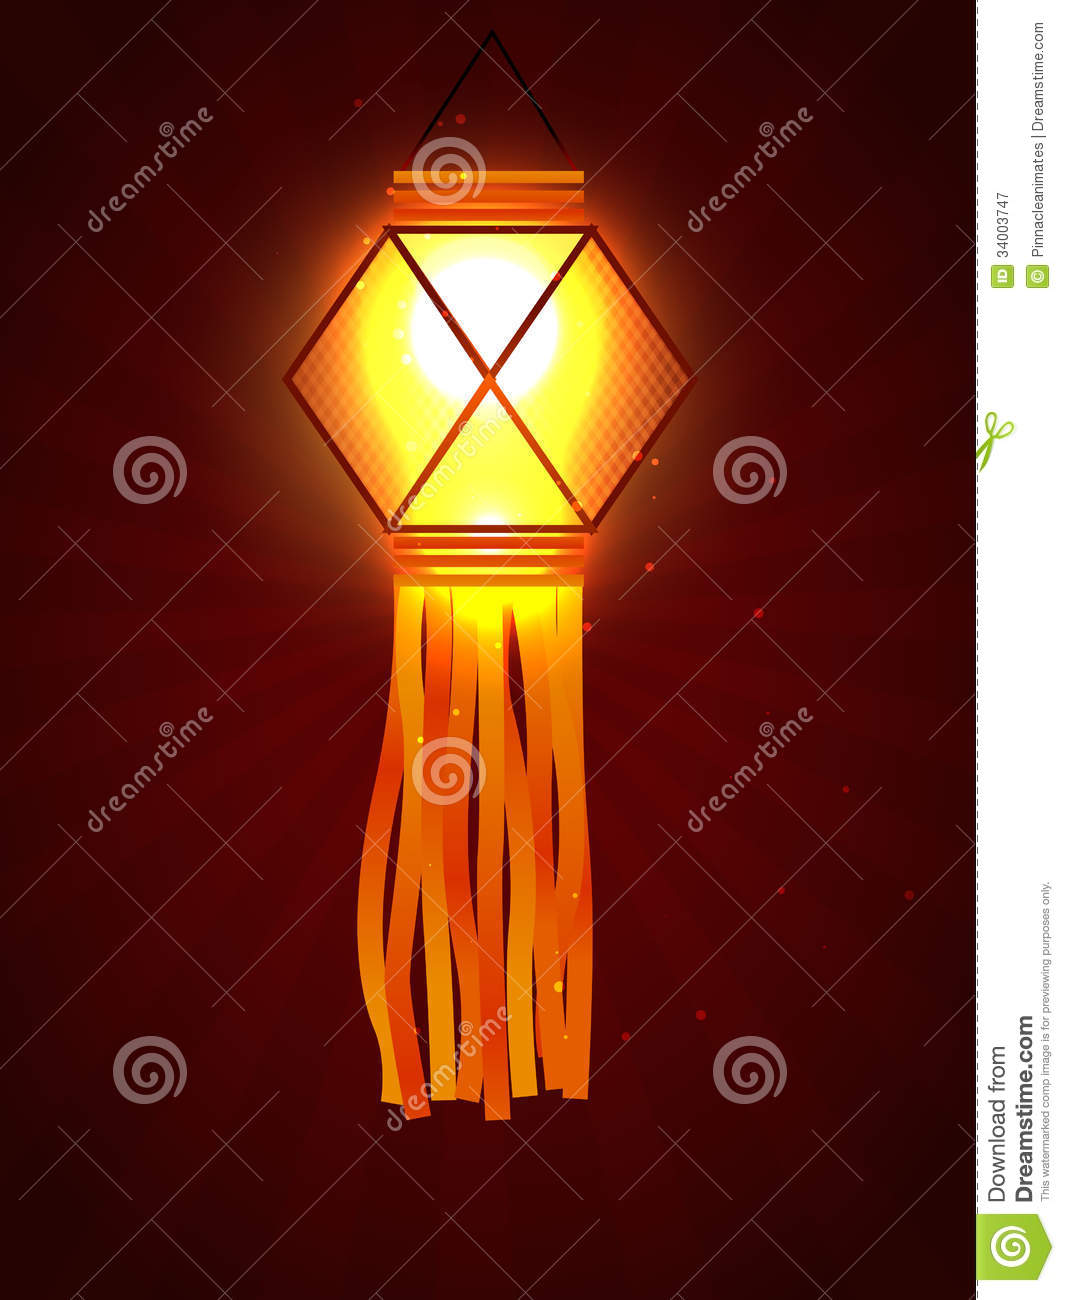 Diwali Lamp Designs Diwali Lamp Design Royalty Free Stock Photography Image